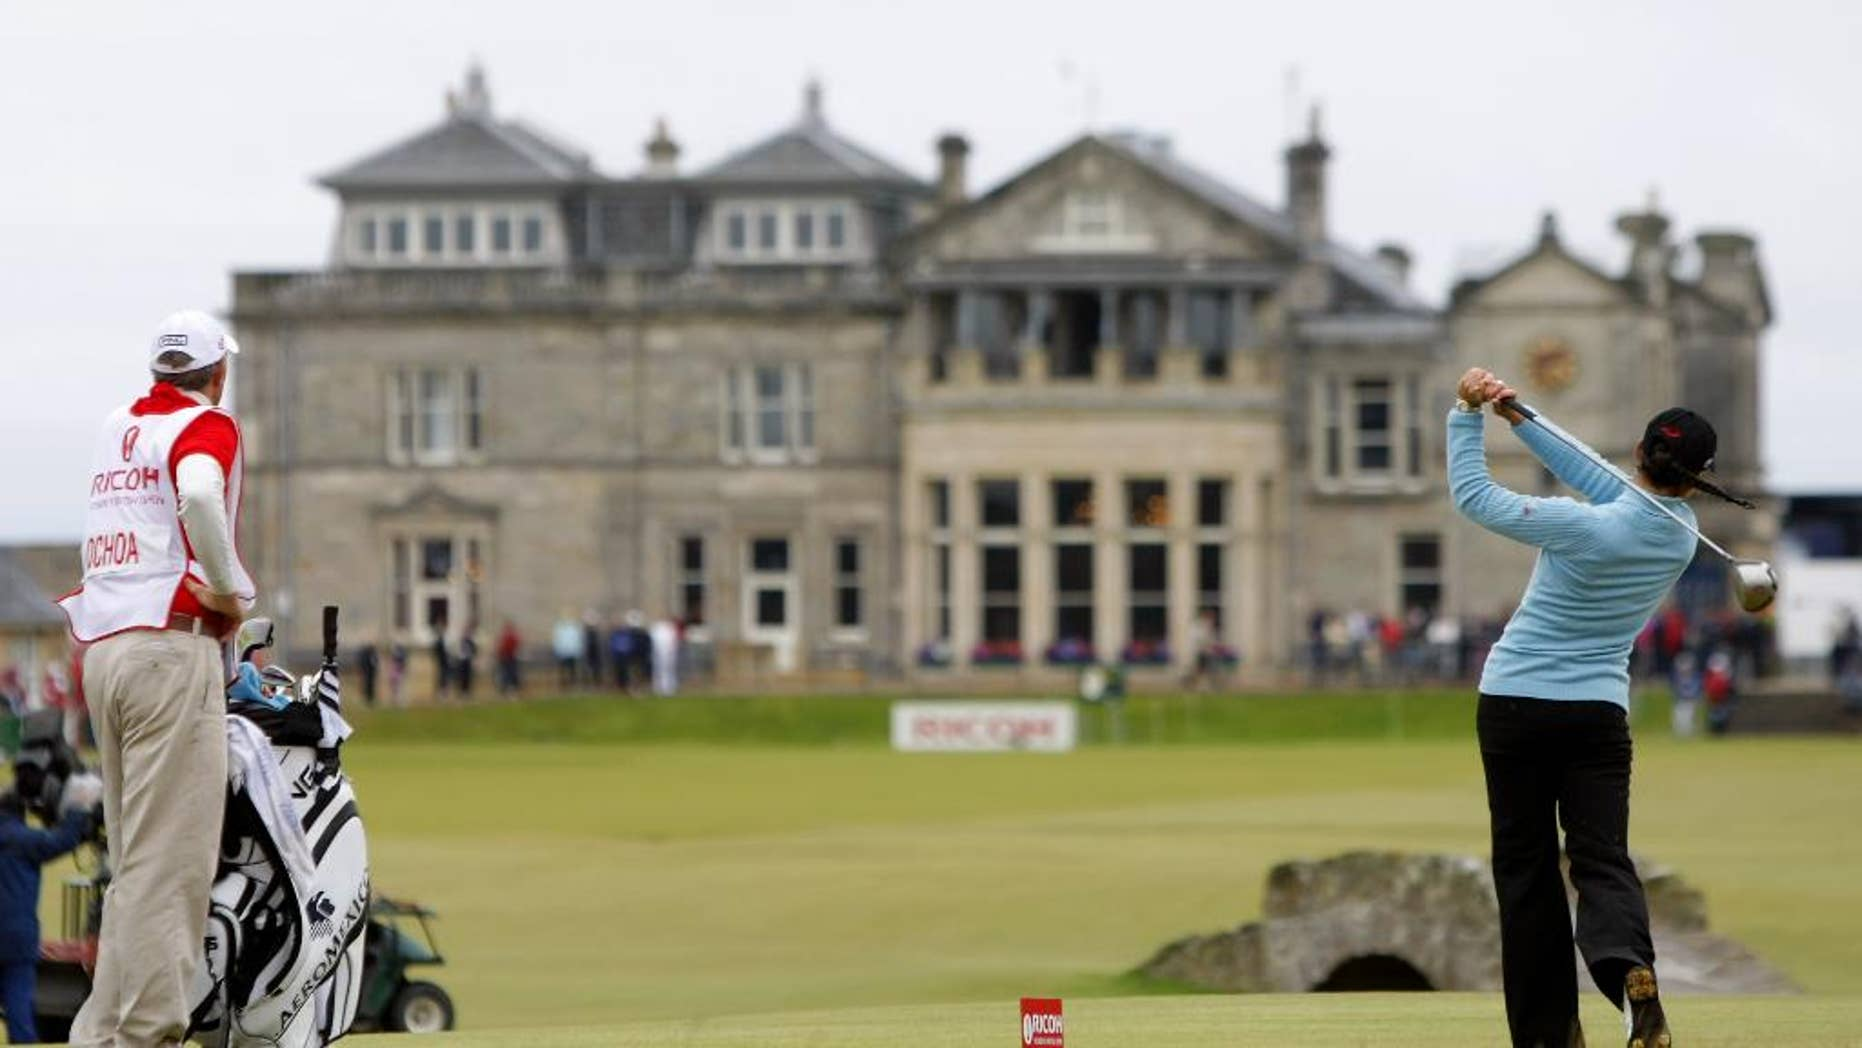 FILE - This is a  Sunday, Aug. 5, 2007 file photo of tournament winner and world number one Mexico's Lorena Ochoa as she tees off from the 18th with the St Andrews clubhouse in the background, during the Women's British Open golf tournament on the Old Course at the Royal and Ancient Golf Club in St Andrews, Scotland.  The Royal & Ancient could finally be allowing women to join one of the most influential golf clubs.  The Daily Mail newspaper on Wednesday March 26, 2014 cited a letter from the R&A to its 2,500 members recommending they change the all-male membership policy at St. Andrews.  (AP Photo/Matt Dunham, File)